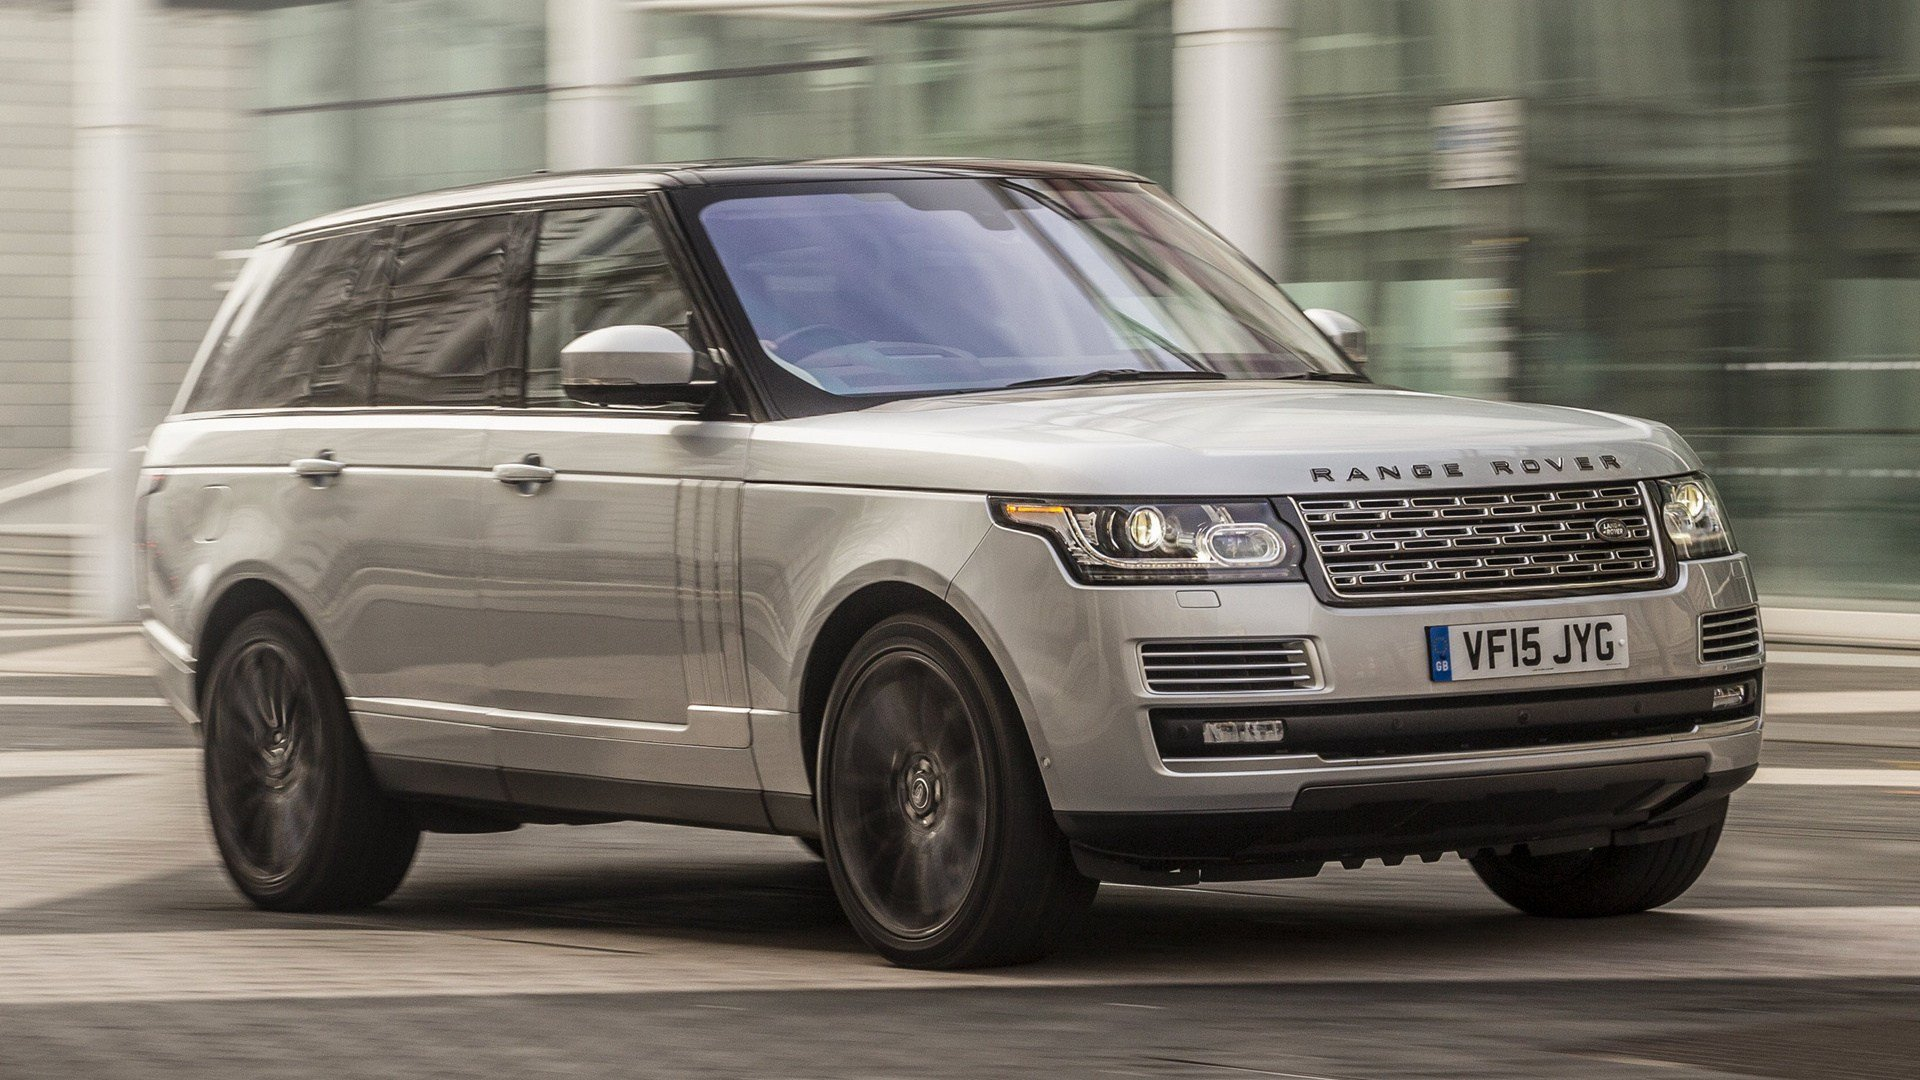 Latest 2015 Range Rover Svautobiography Uk Wallpapers And Hd Free Download